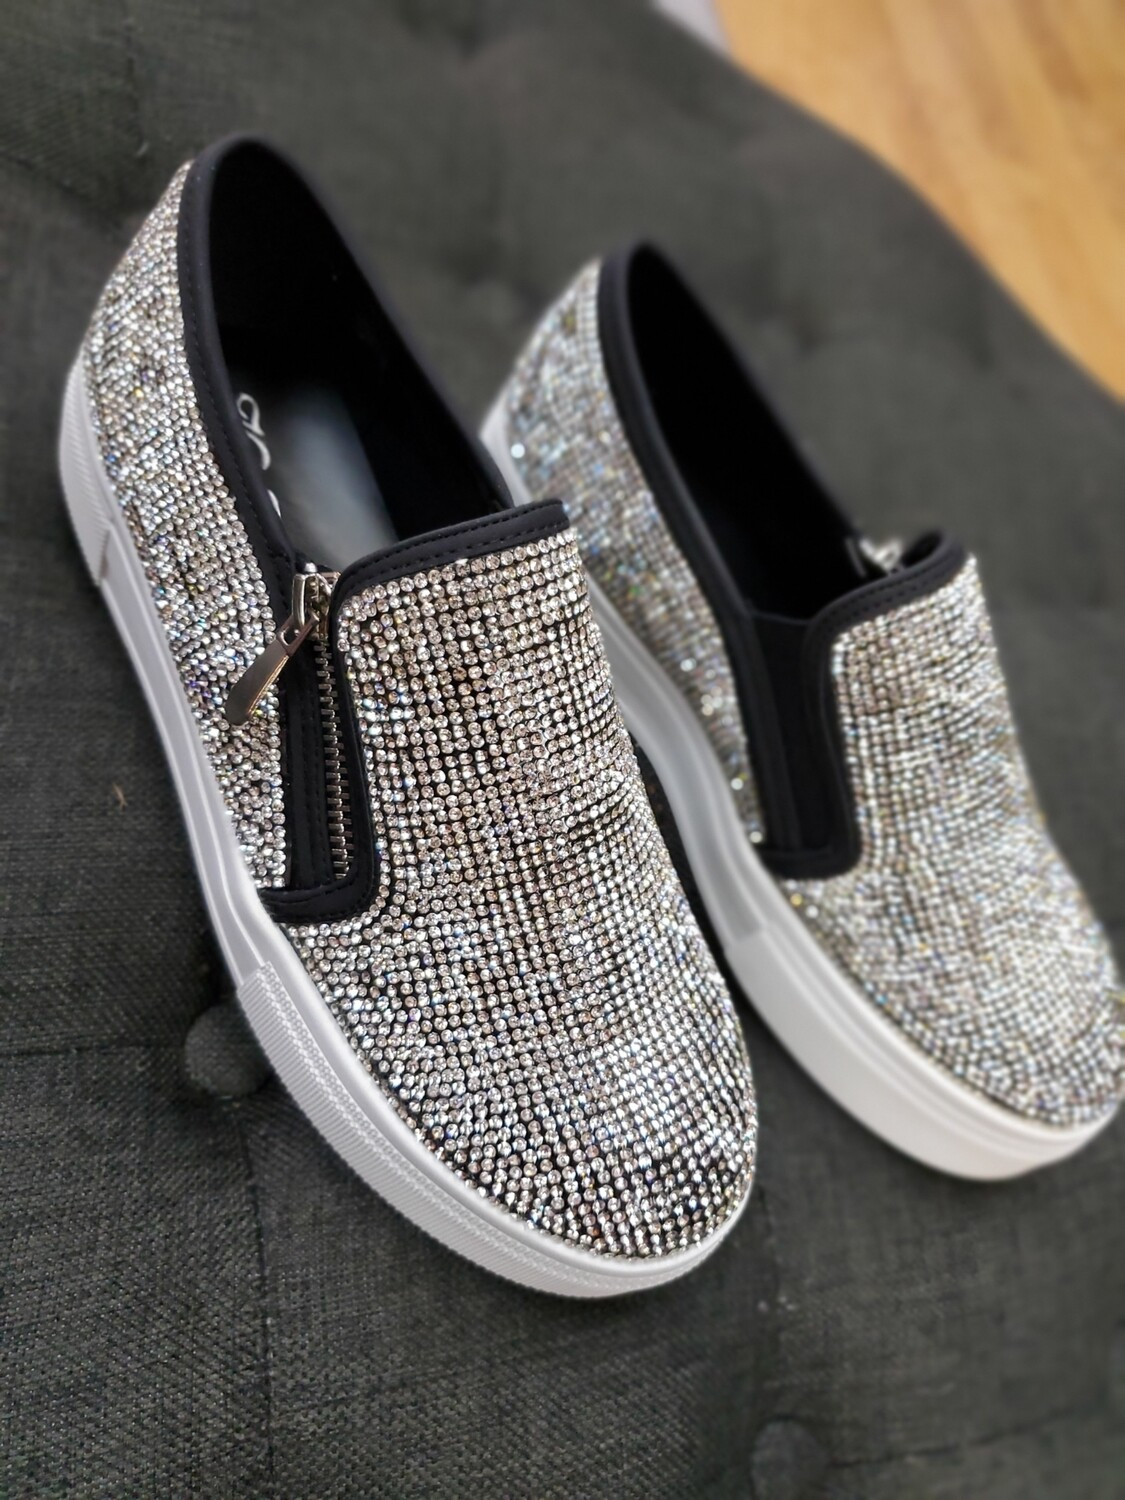 Blinged Out Sneaker